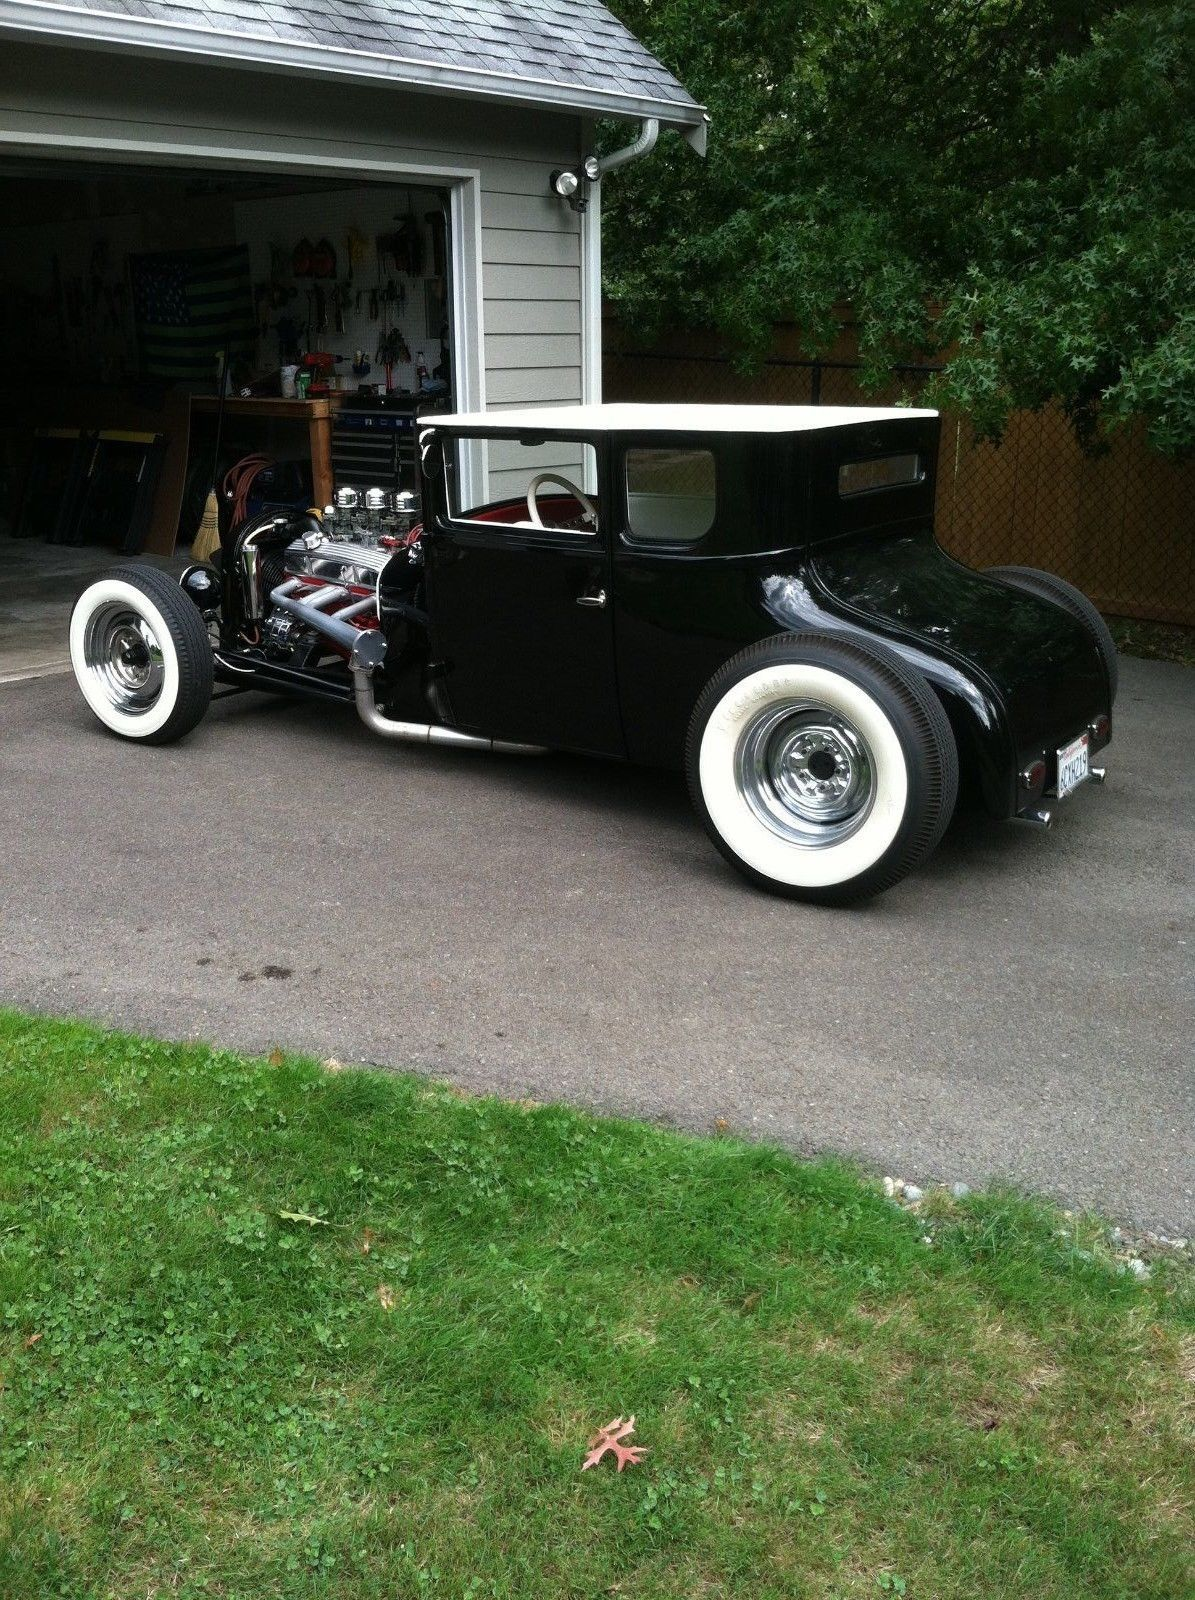 Chopped black&white 1926 Ford Model T Coupe Hot Rod | Hot rods for ...